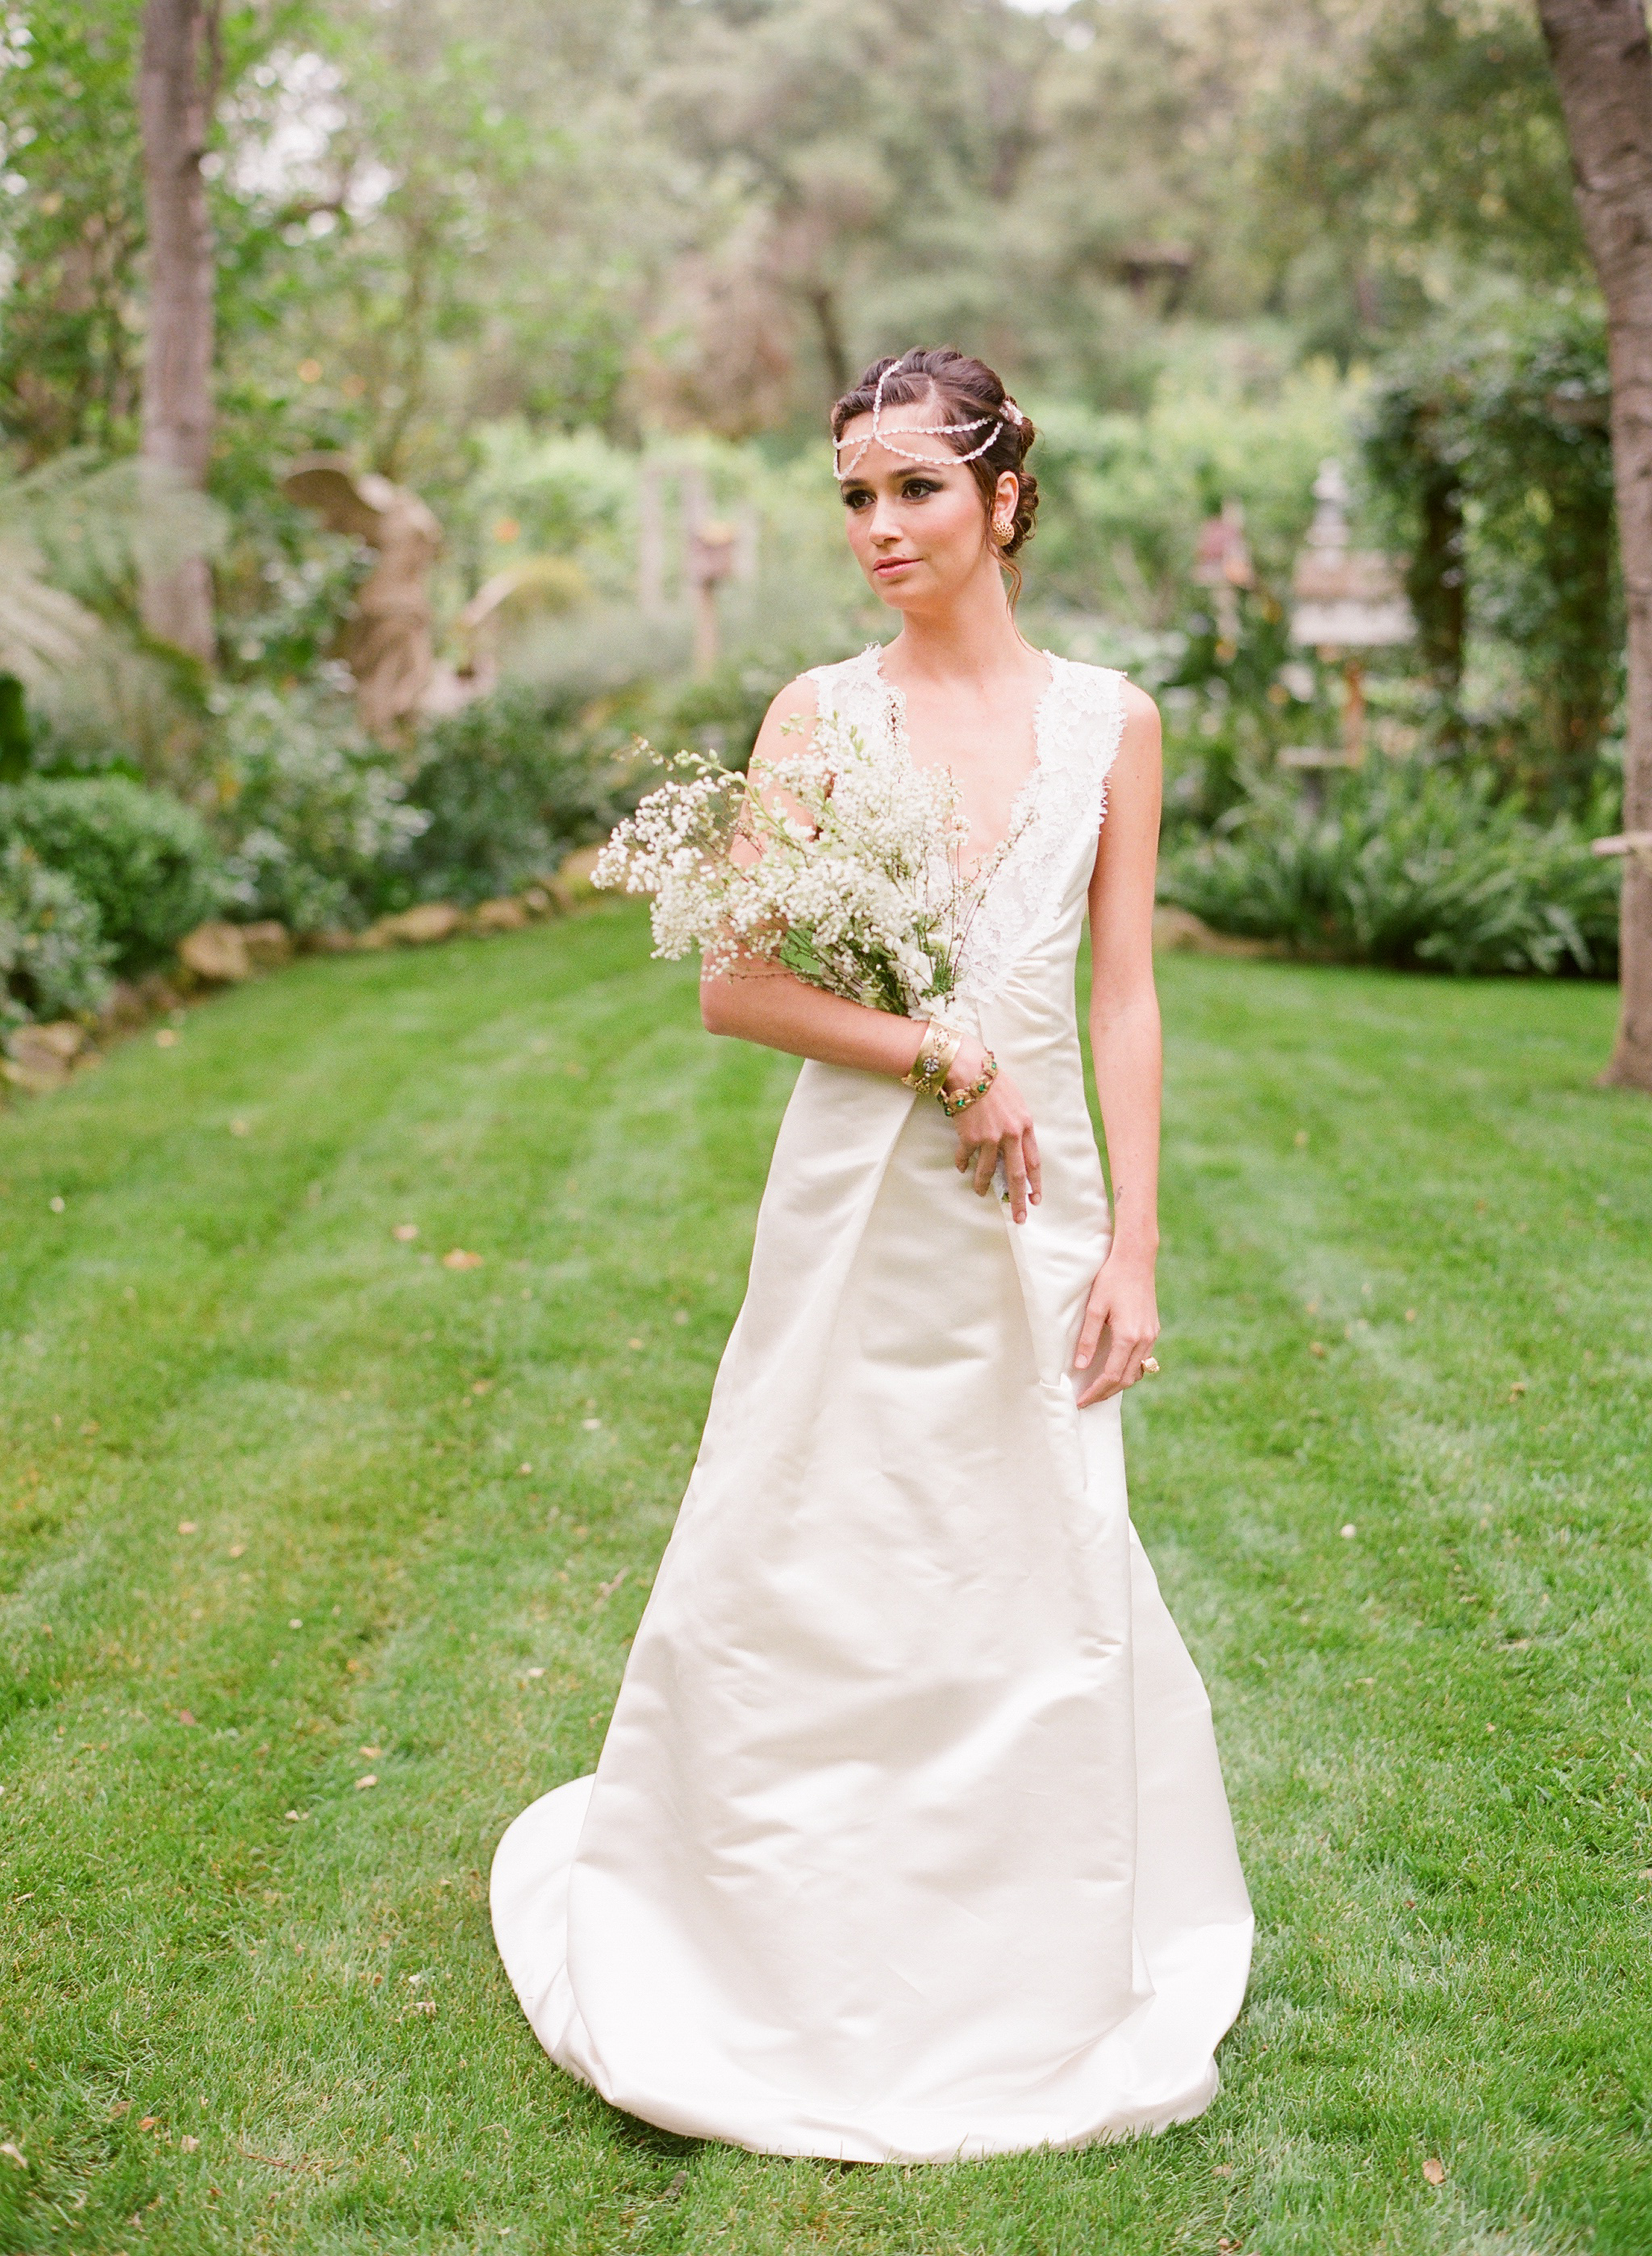 Guide to Match Wedding Dress and Bouquet